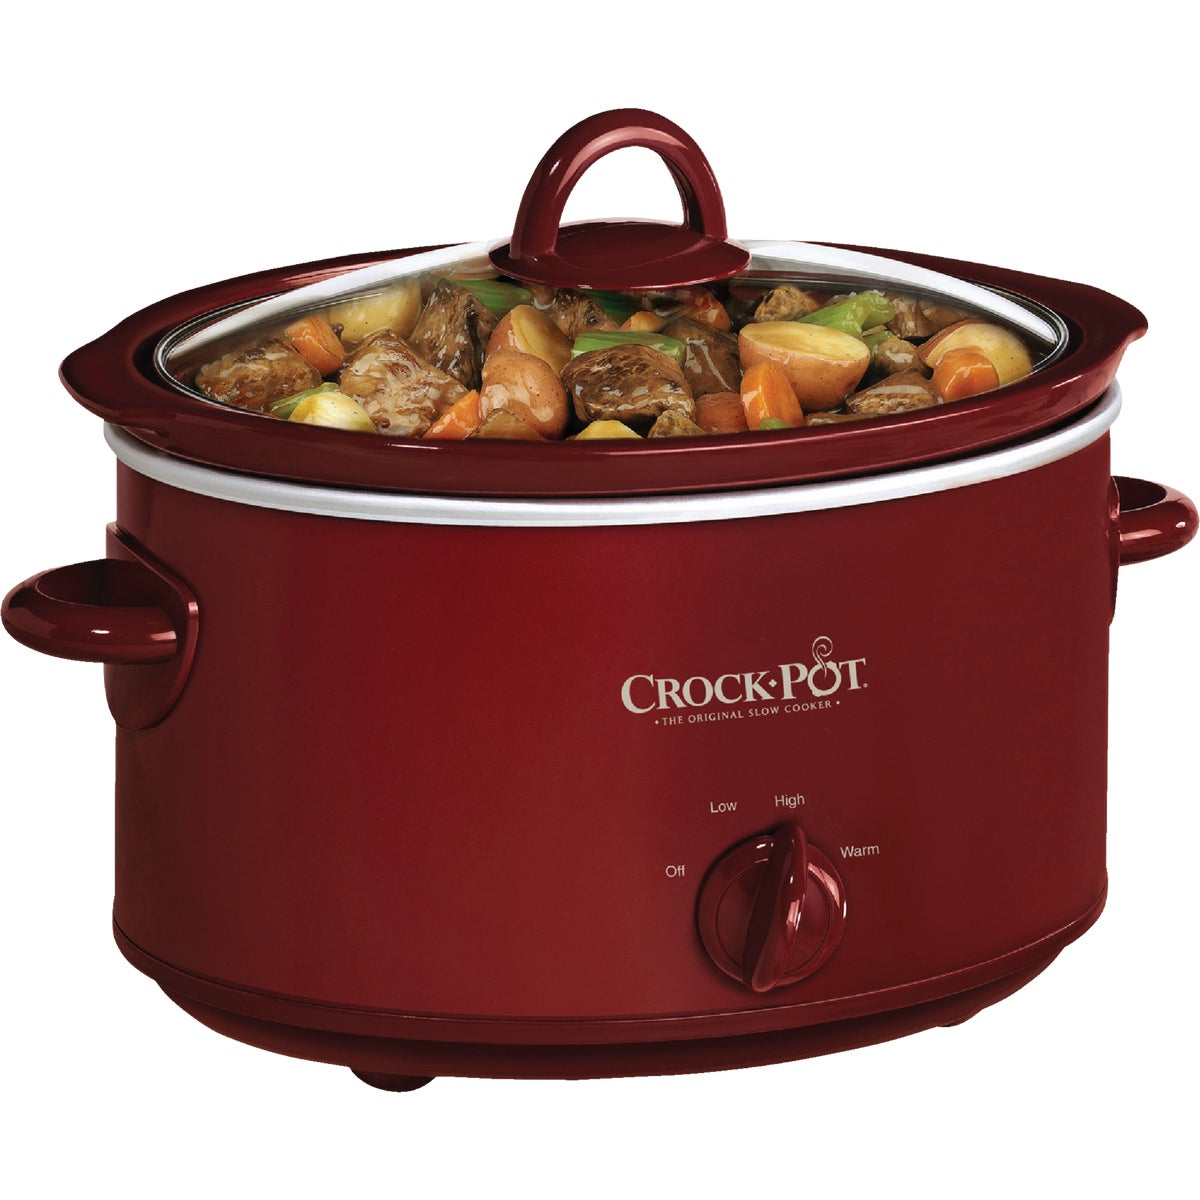 RED 4QT OVAL SLOW COOKER